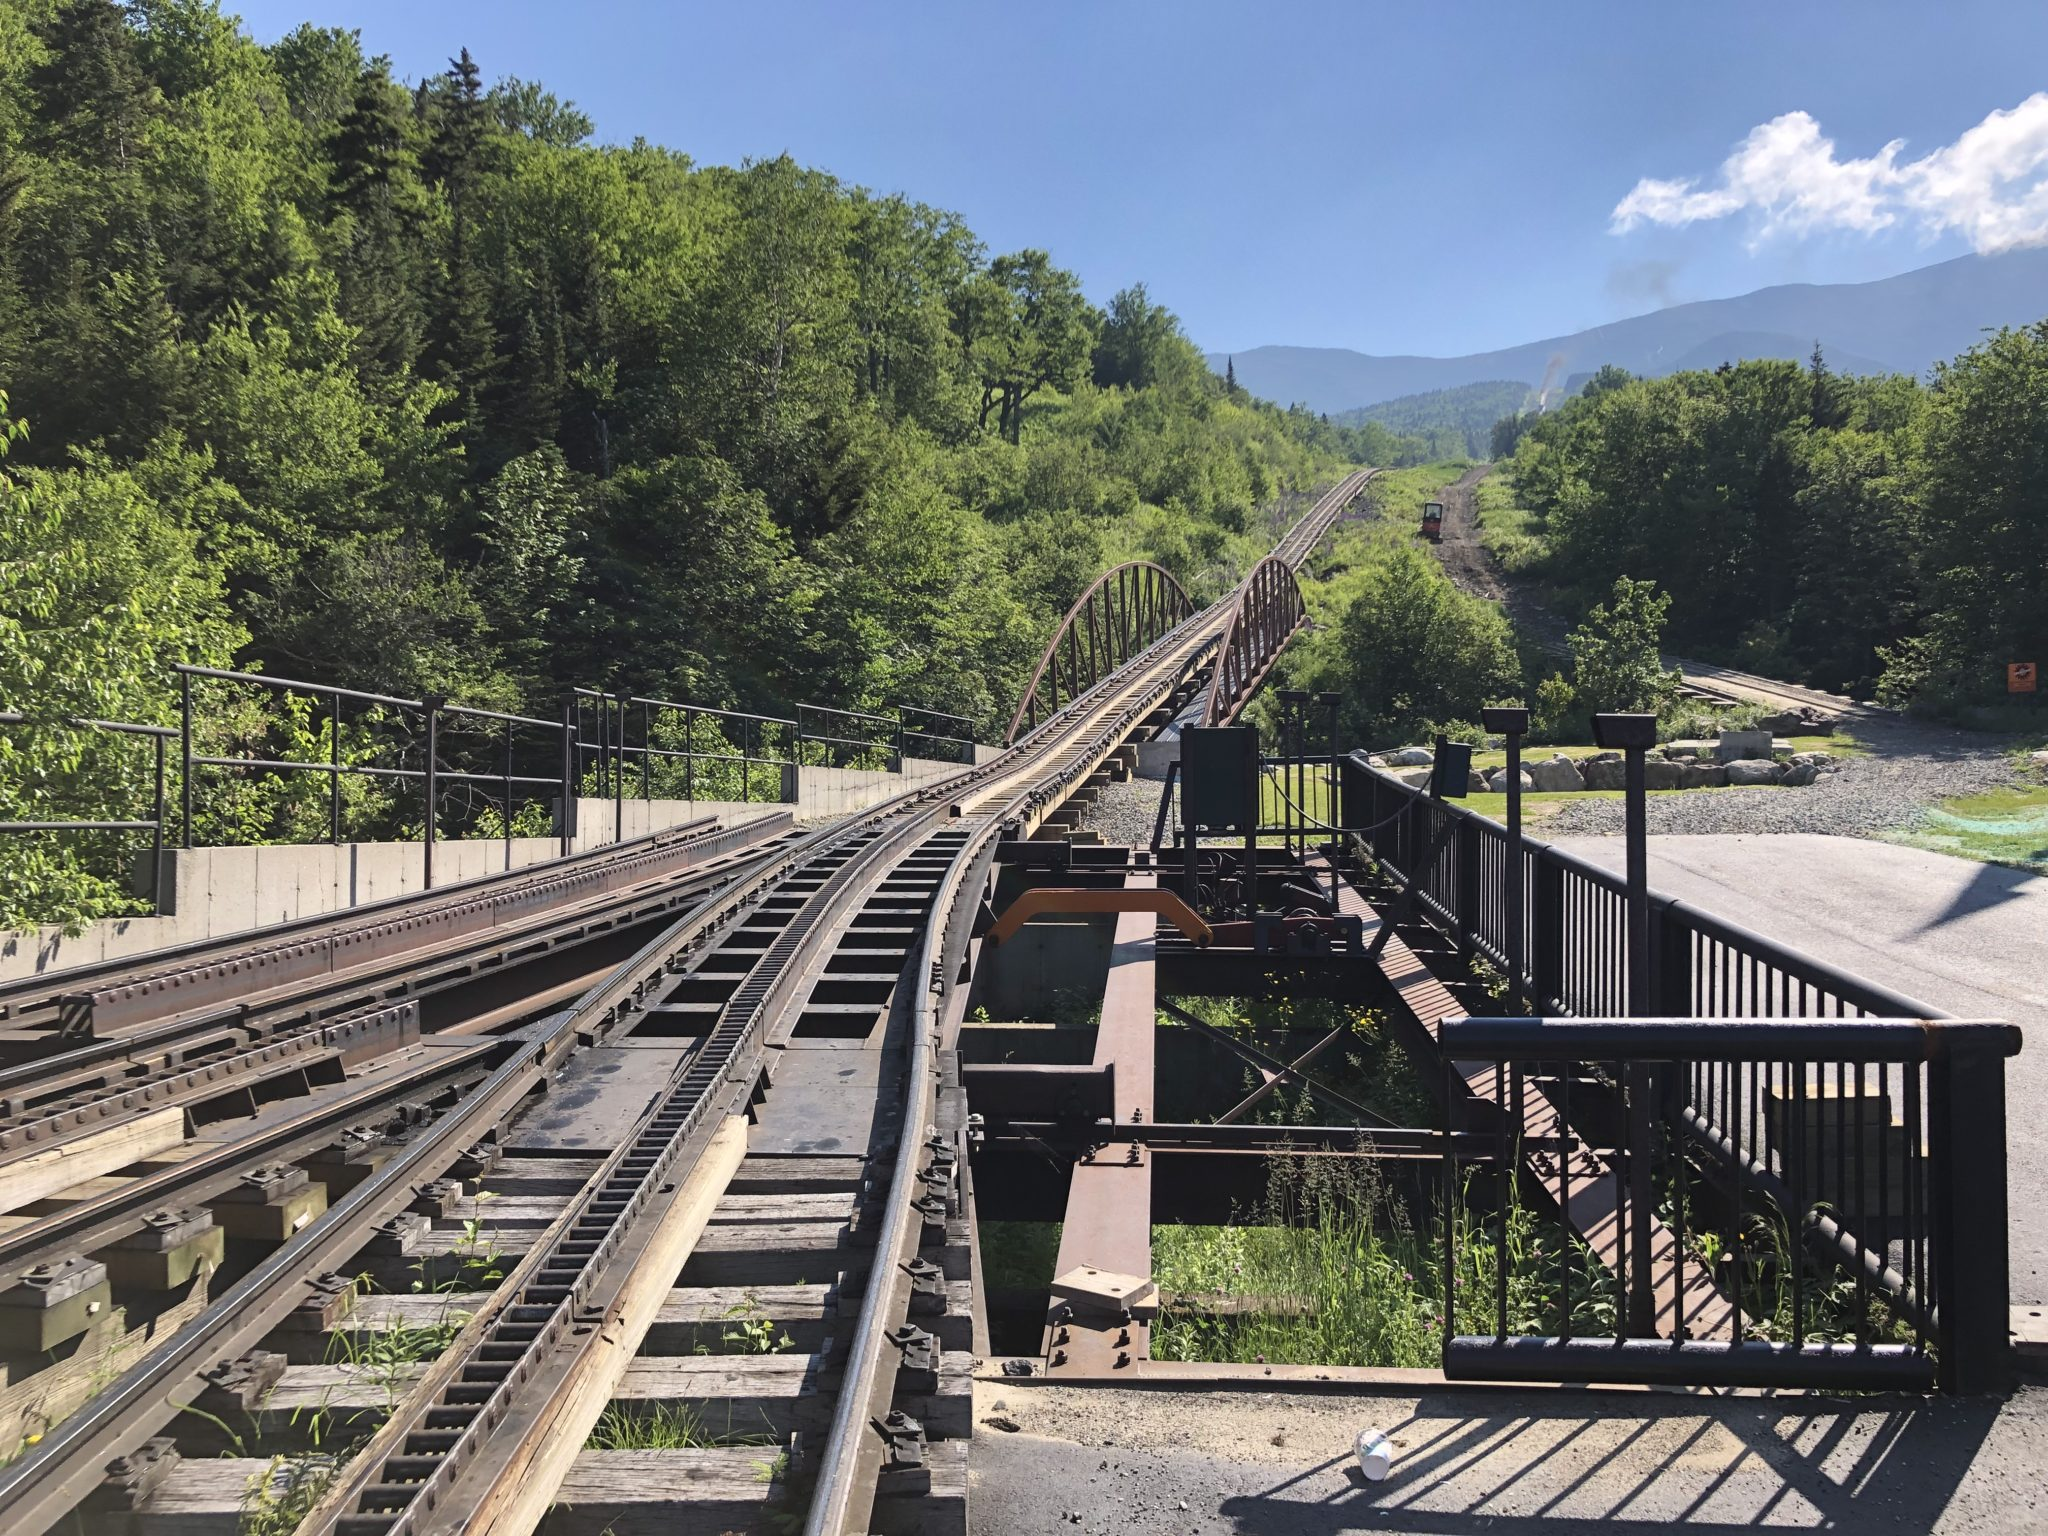 If you're in northern New Hampshire and you're looking for a fun and unique experience, the Mount Washington Cog Railway is definitley it!